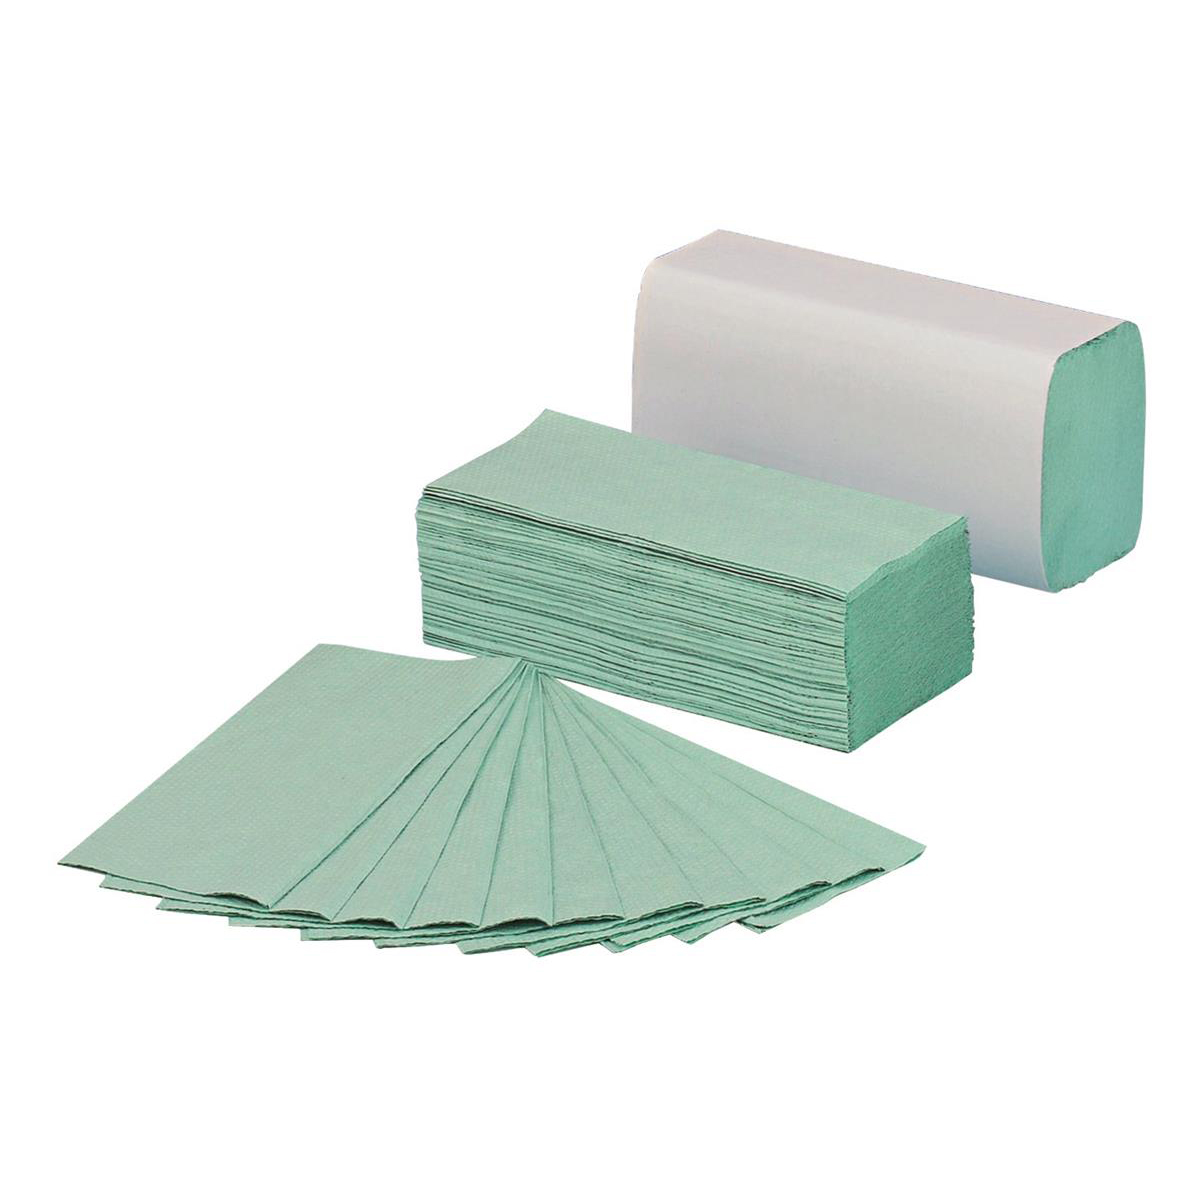 5 Star Facilities Hand Towels 1 Ply Z-fold 250 Towels per Sleeve Green Pack 12 Sleeves